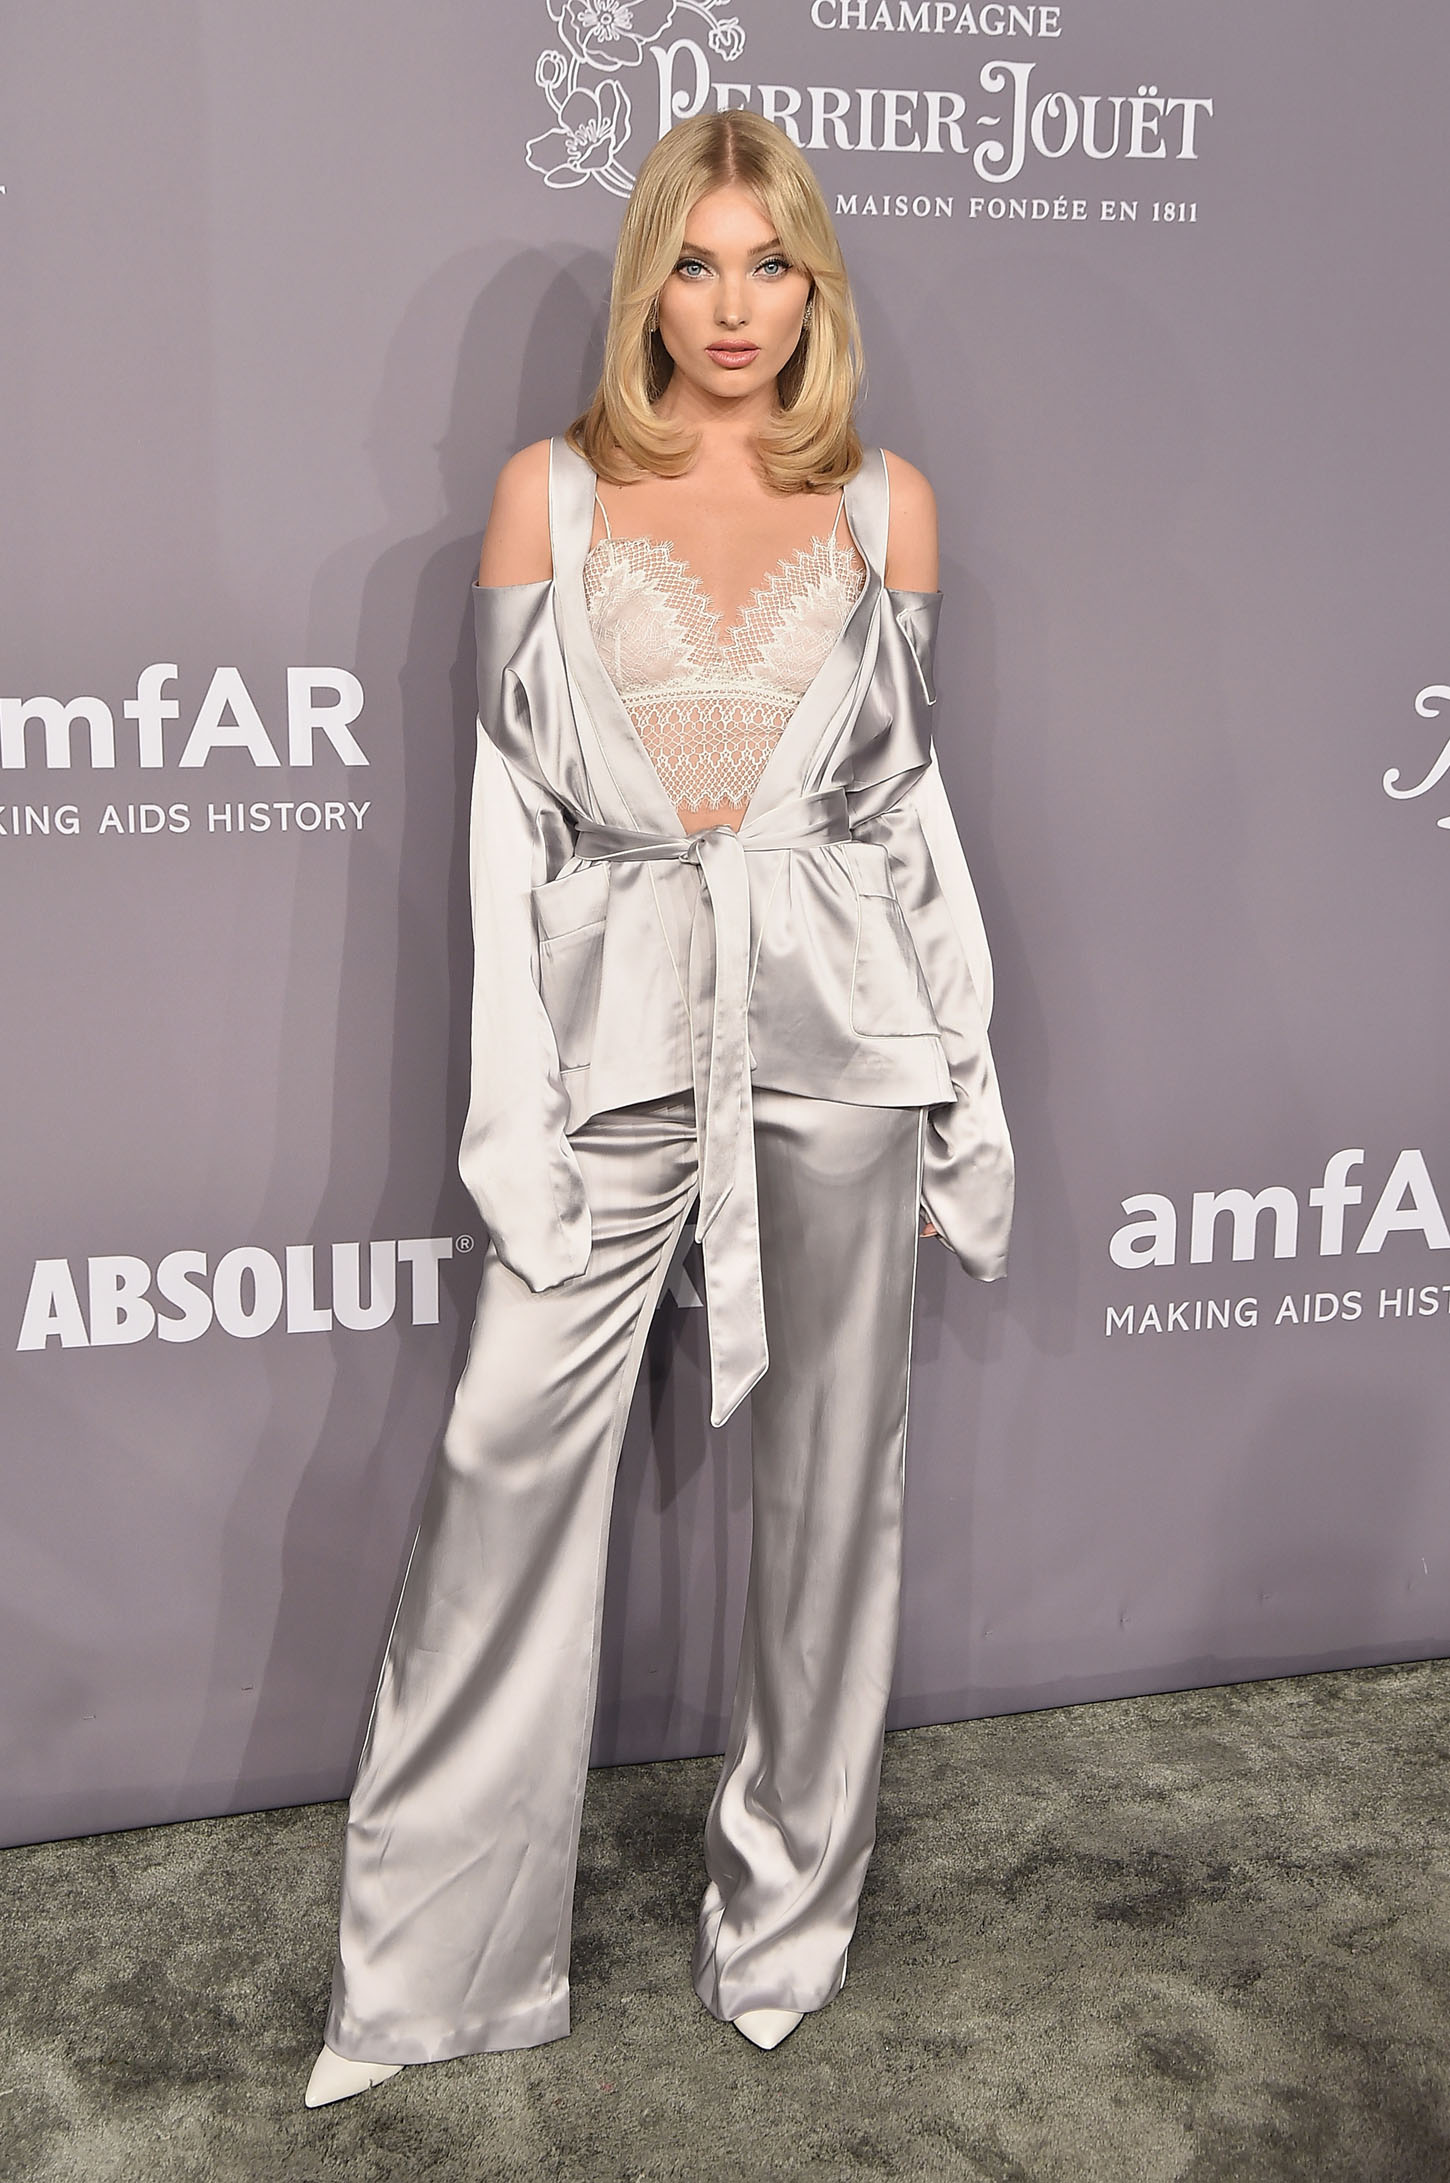 NEW YORK, NY - FEBRUARY 07:  Model Elsa Hosk attends the 2018 amfAR Gala New York at Cipriani Wall Street on February 7, 2018 in New York City.  (Photo by Theo Wargo/Getty Images)